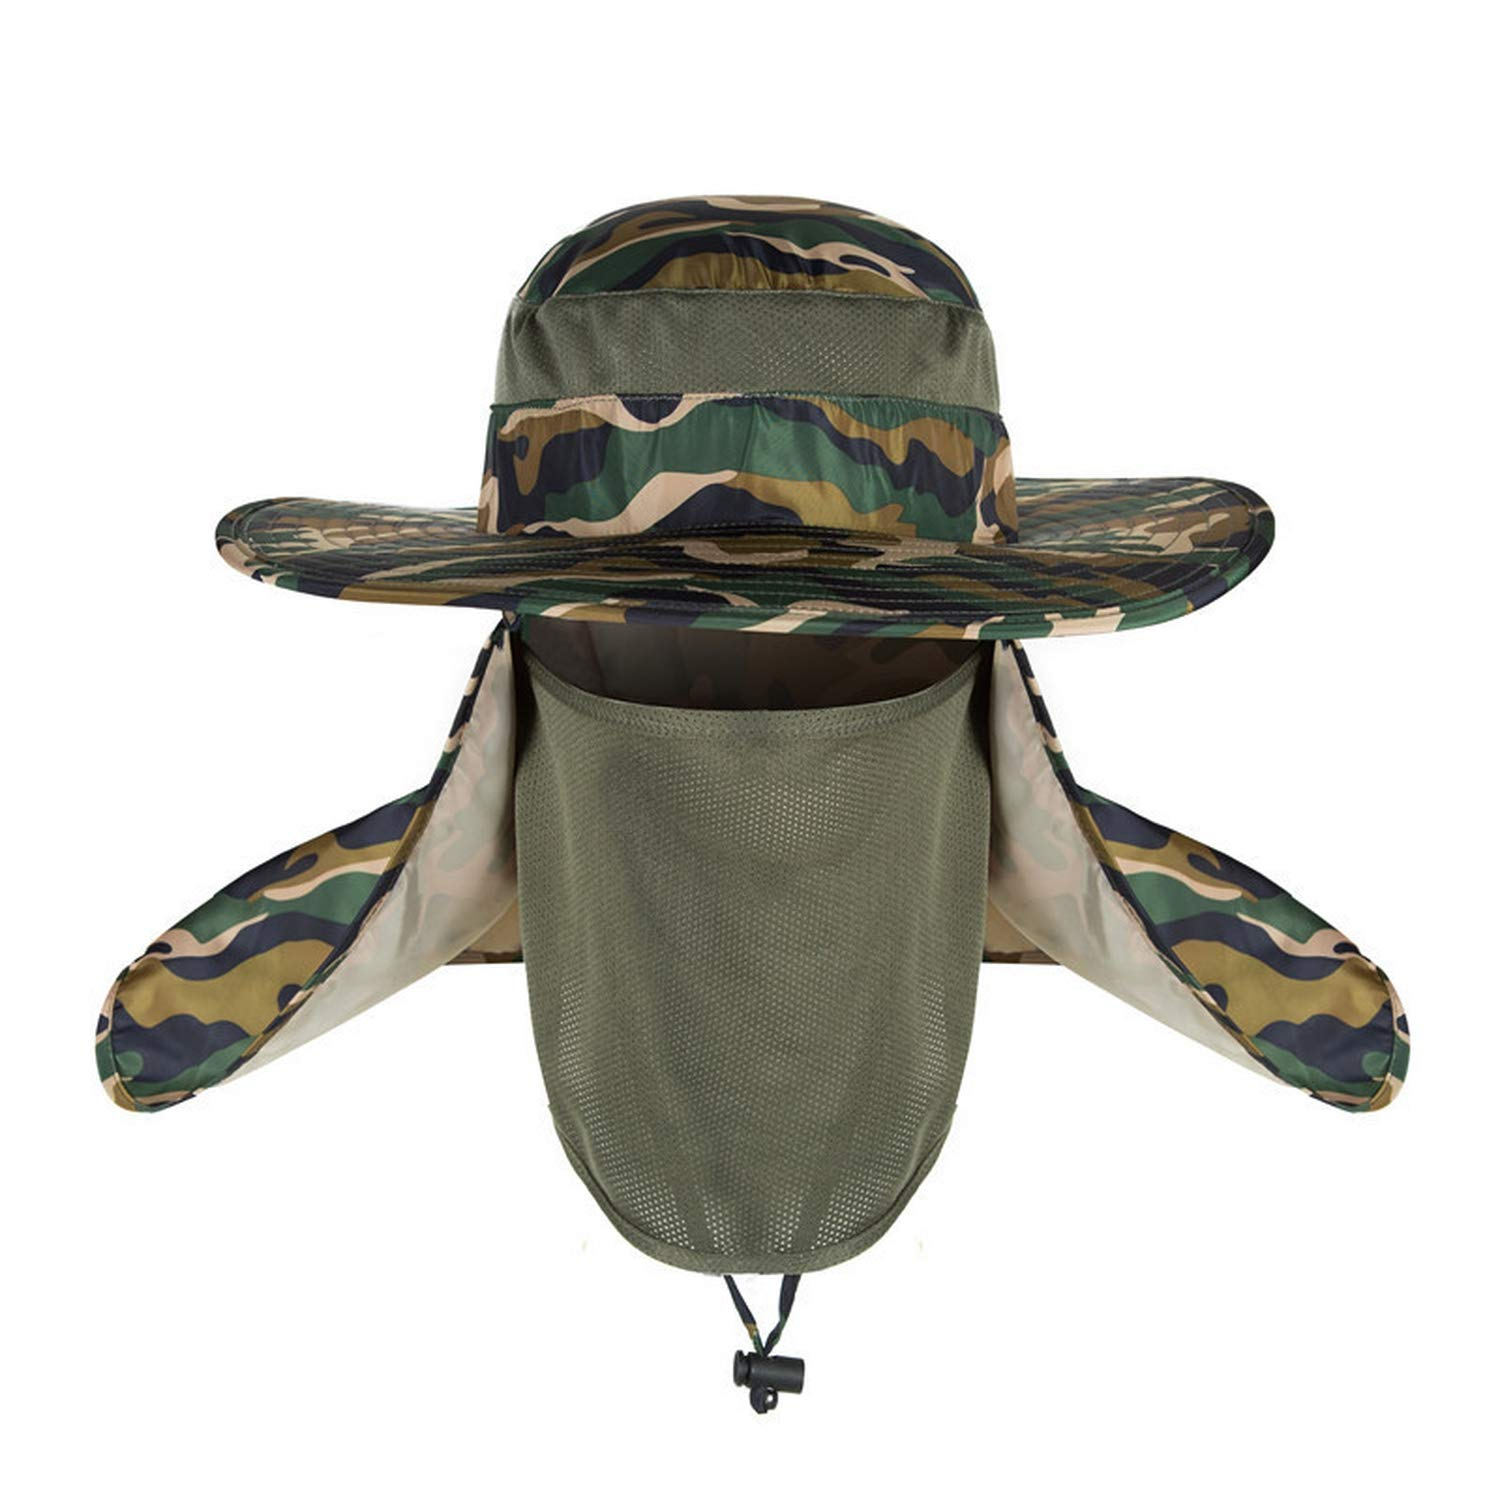 Waterproof Bucket Hats with a Wide Brim New Summer Wind-Proof Sun Hat UV Protection Fishing Hat Fisherman Cap